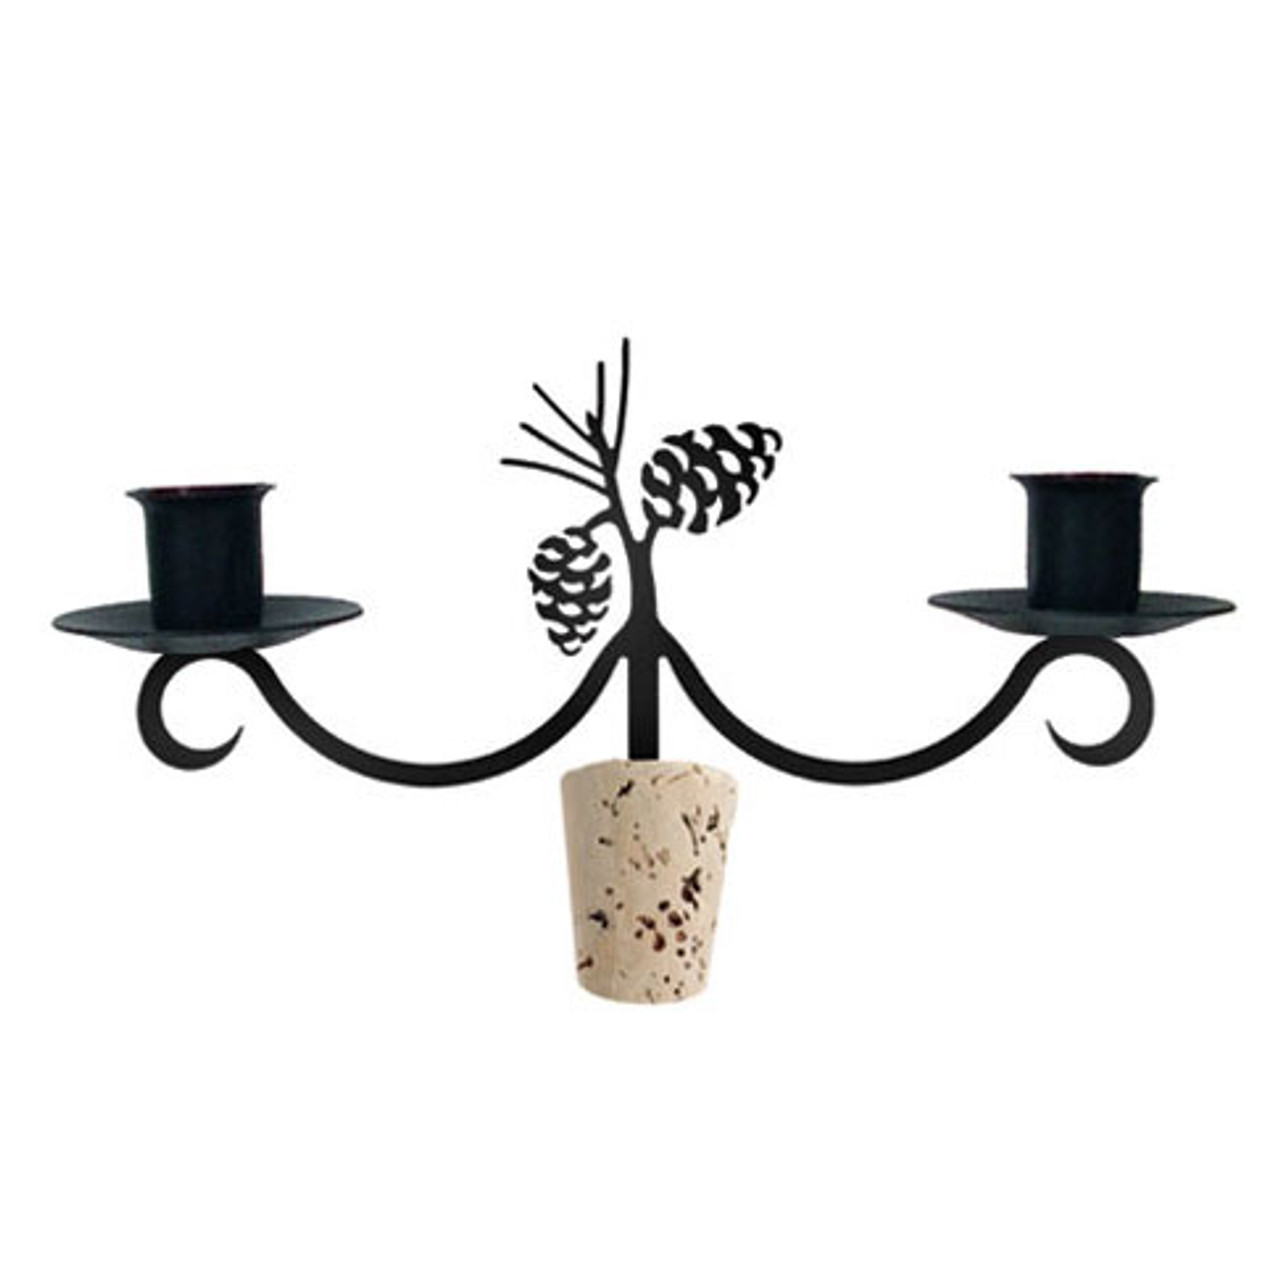 Black Wrought Iron Bottle Topper Candle Holder